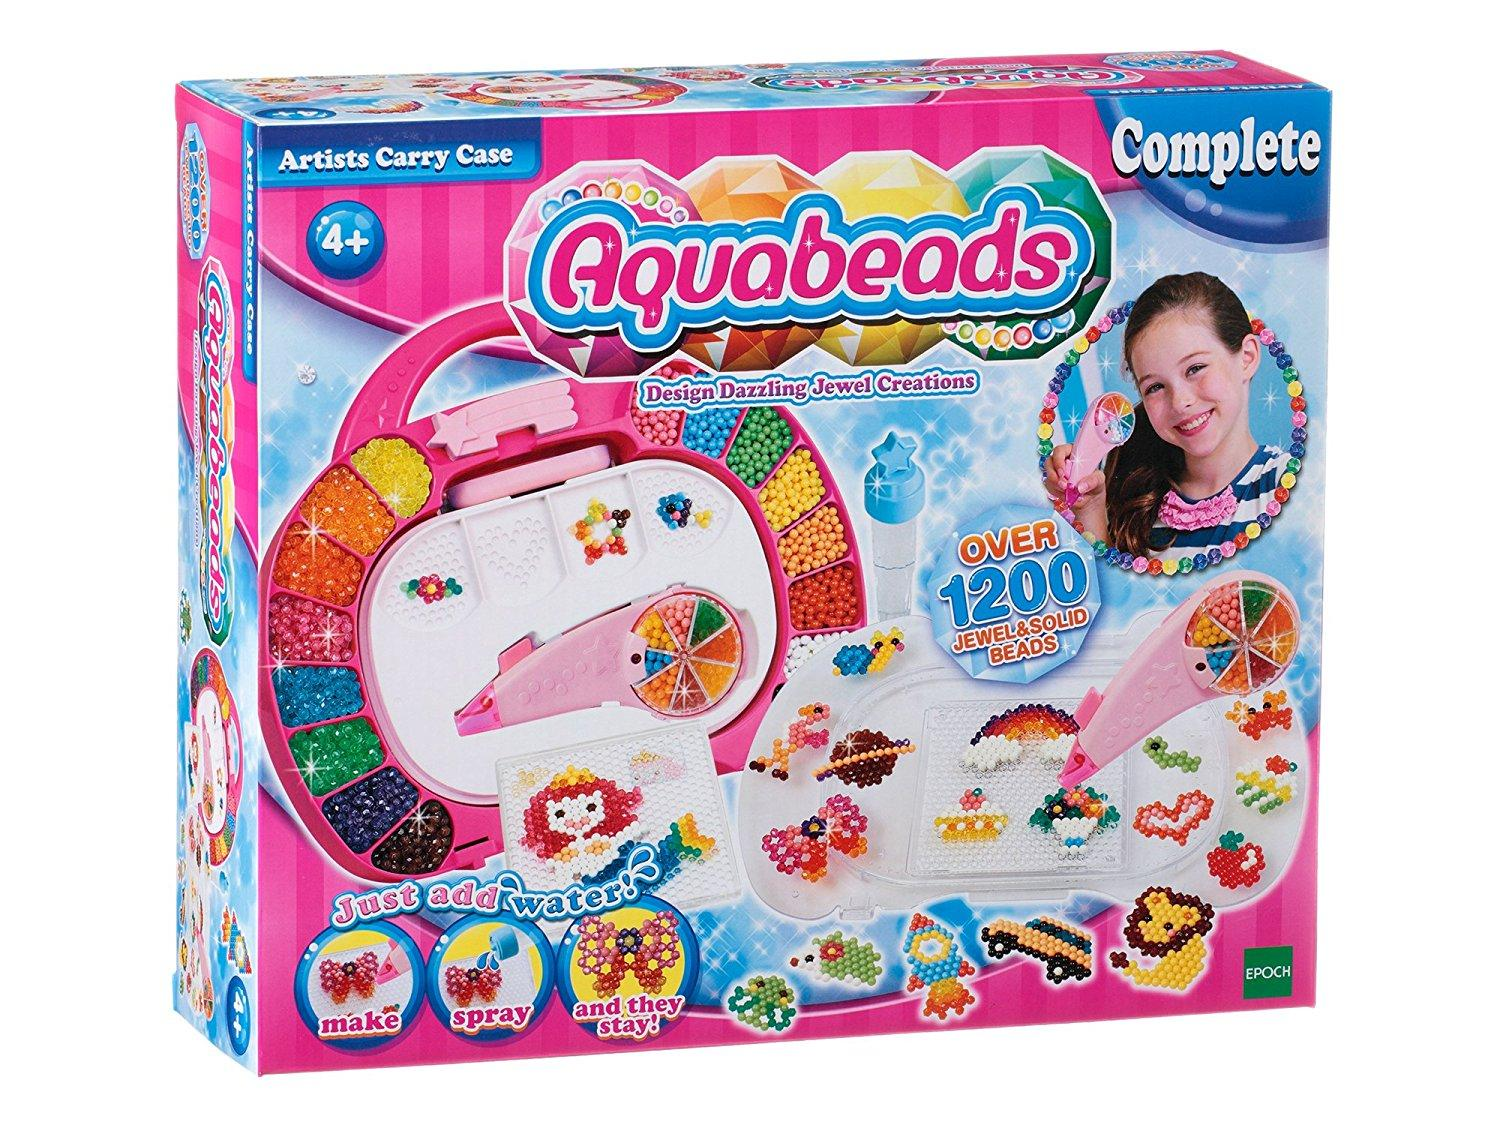 Aquabeads Complete Artists Carry Case (79128)